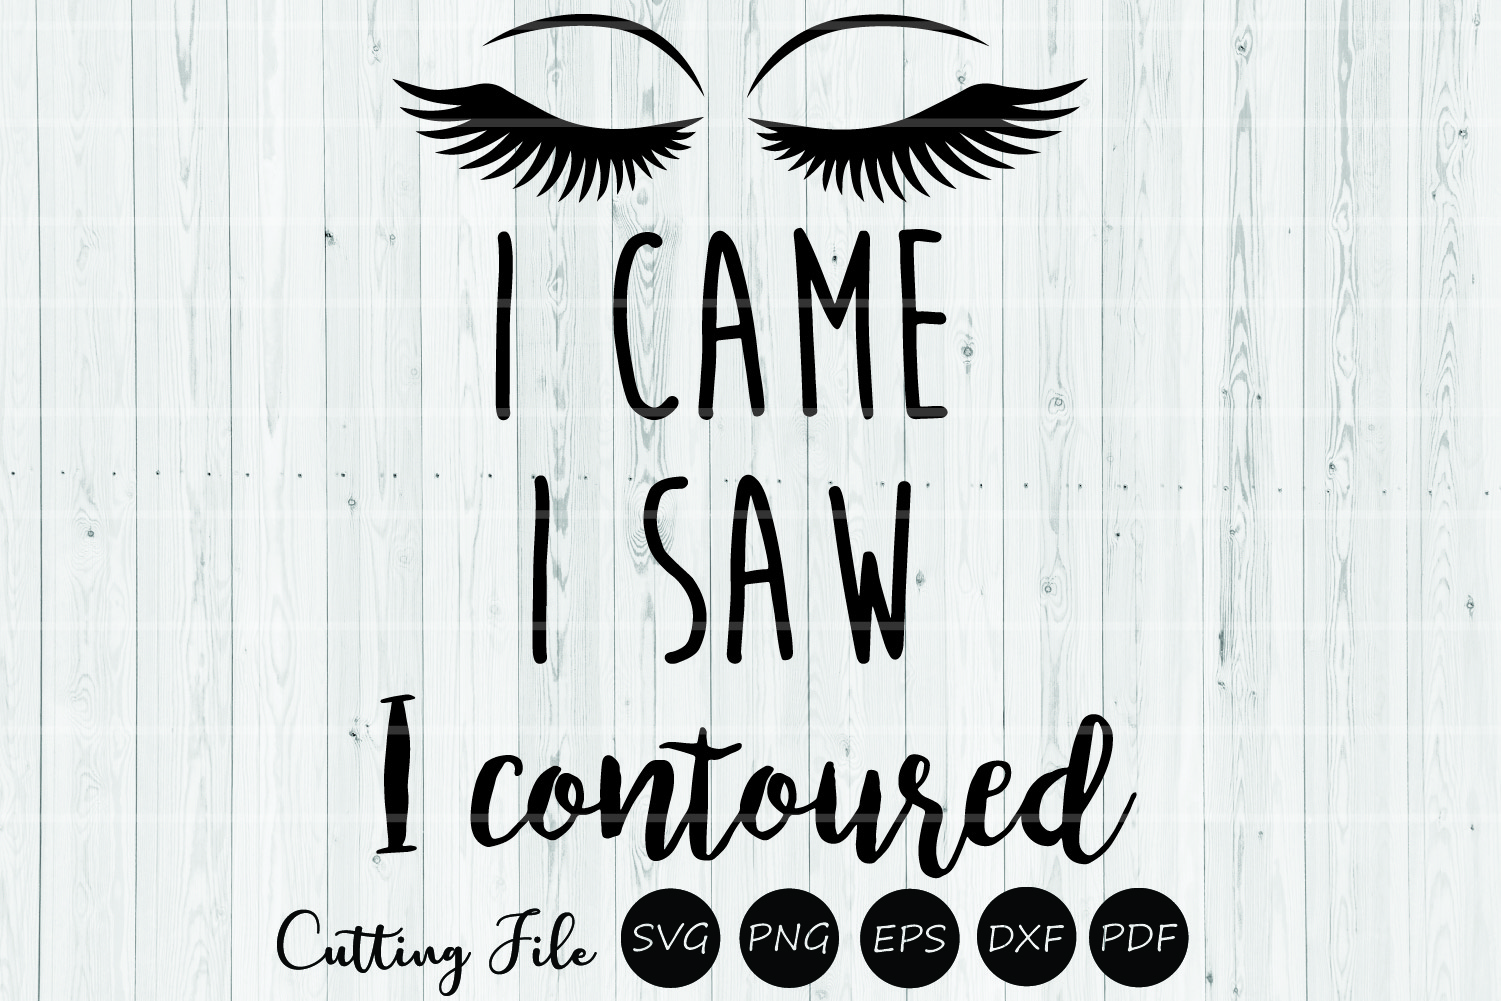 Download Free I Came I Saw I Contoured Sassy Svg Graphic By Hd Art Workshop for Cricut Explore, Silhouette and other cutting machines.